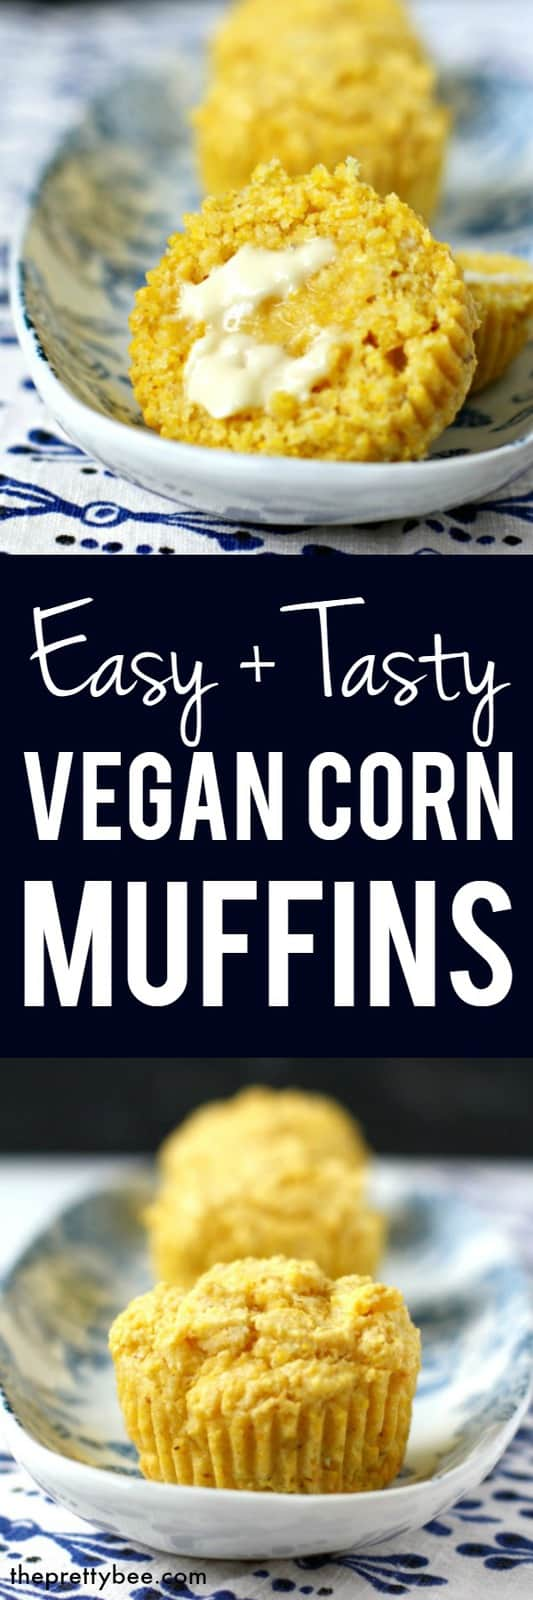 These vegan corn muffins are light and tasty, and just right for serving with some chili! #vegan #dairyfree #glutenfree #cornbread